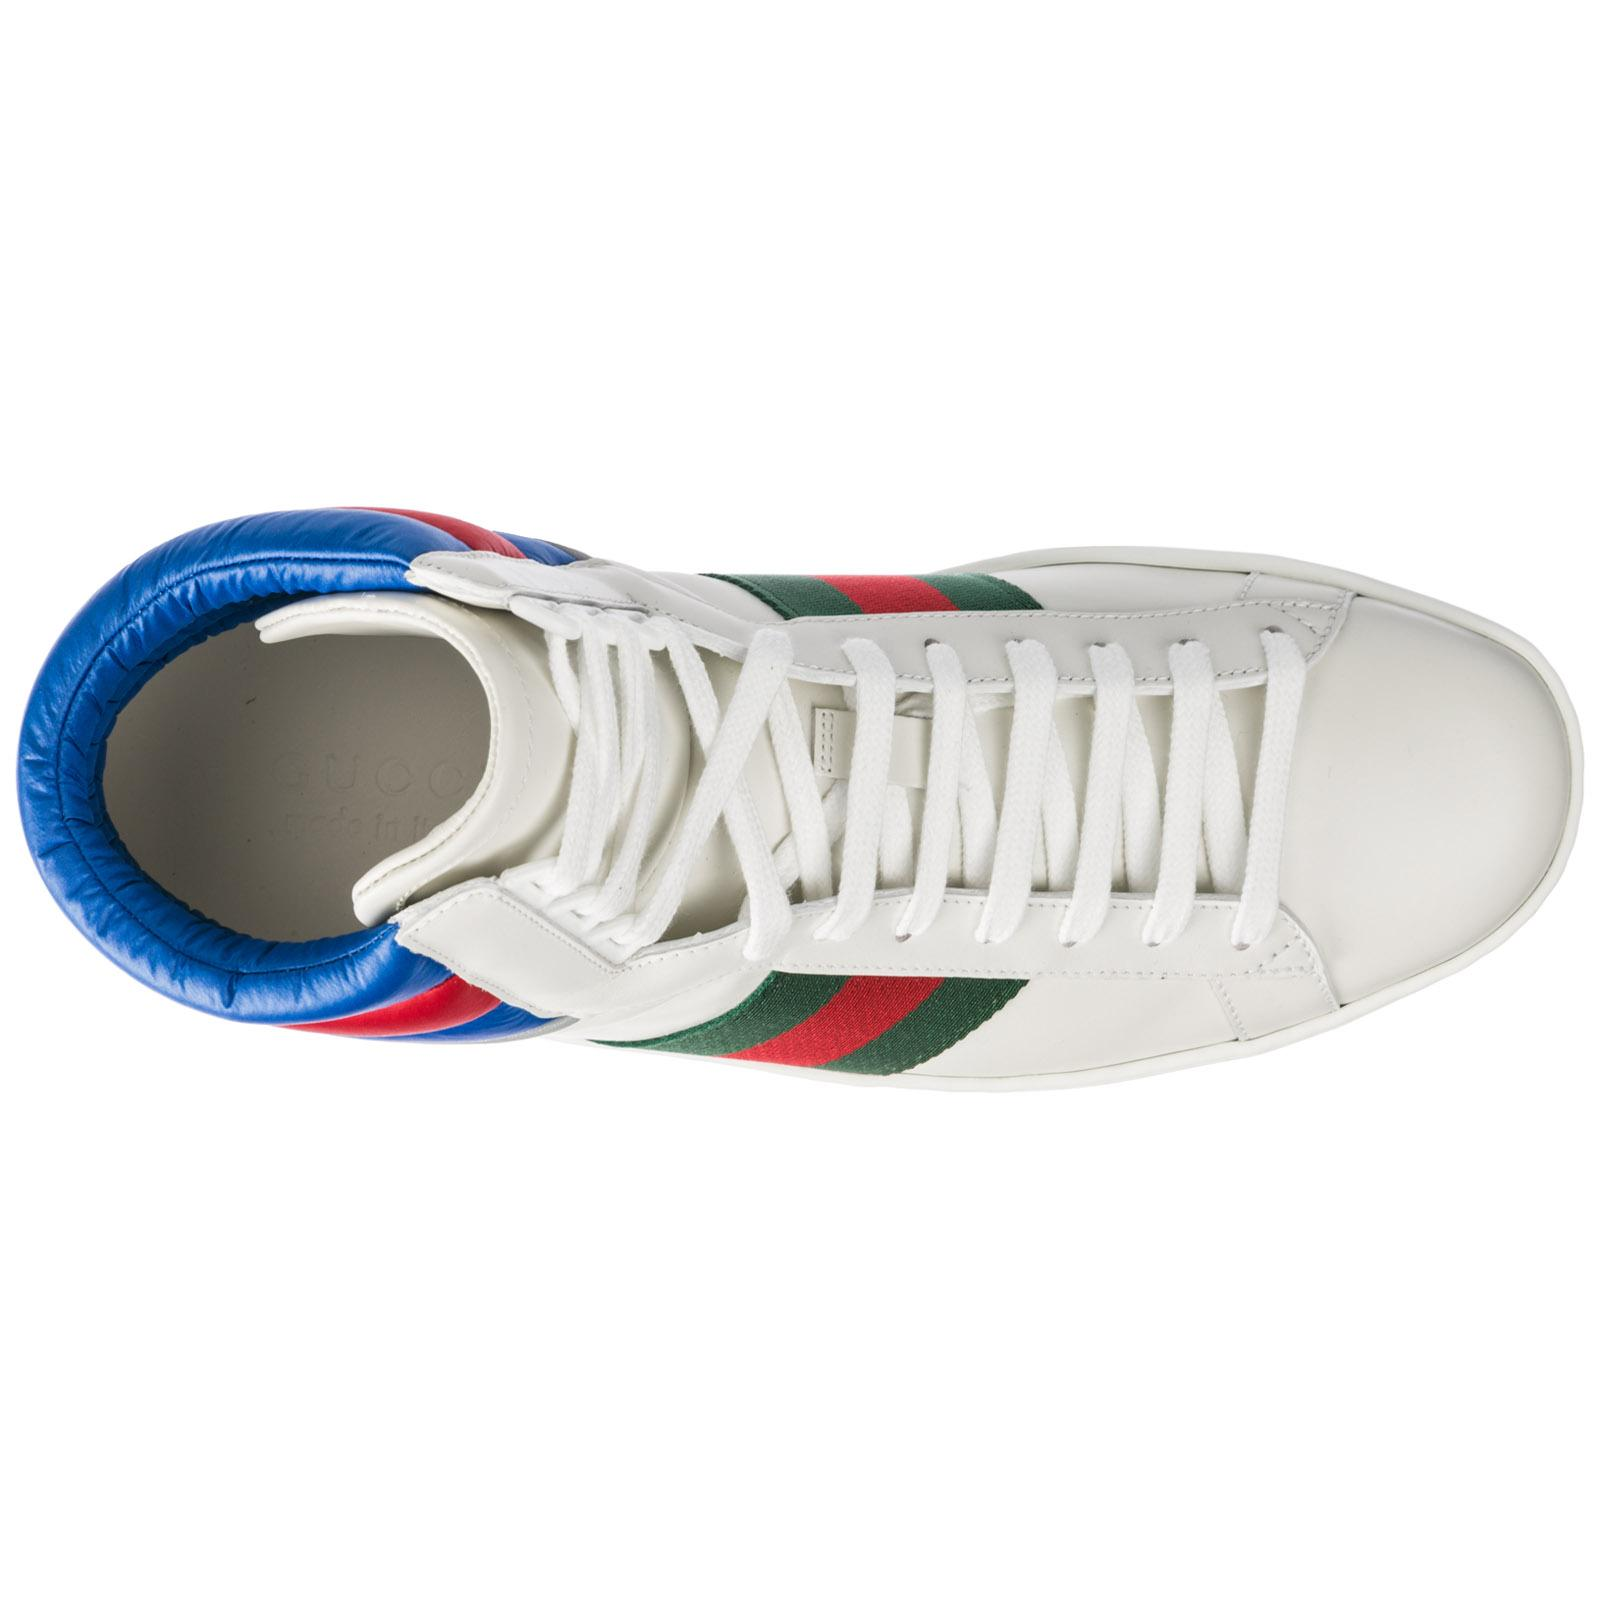 Gucci Scarpe Sneakers Alte Uomo In Pelle Ace for Men - Lyst b6c7b9ccd648